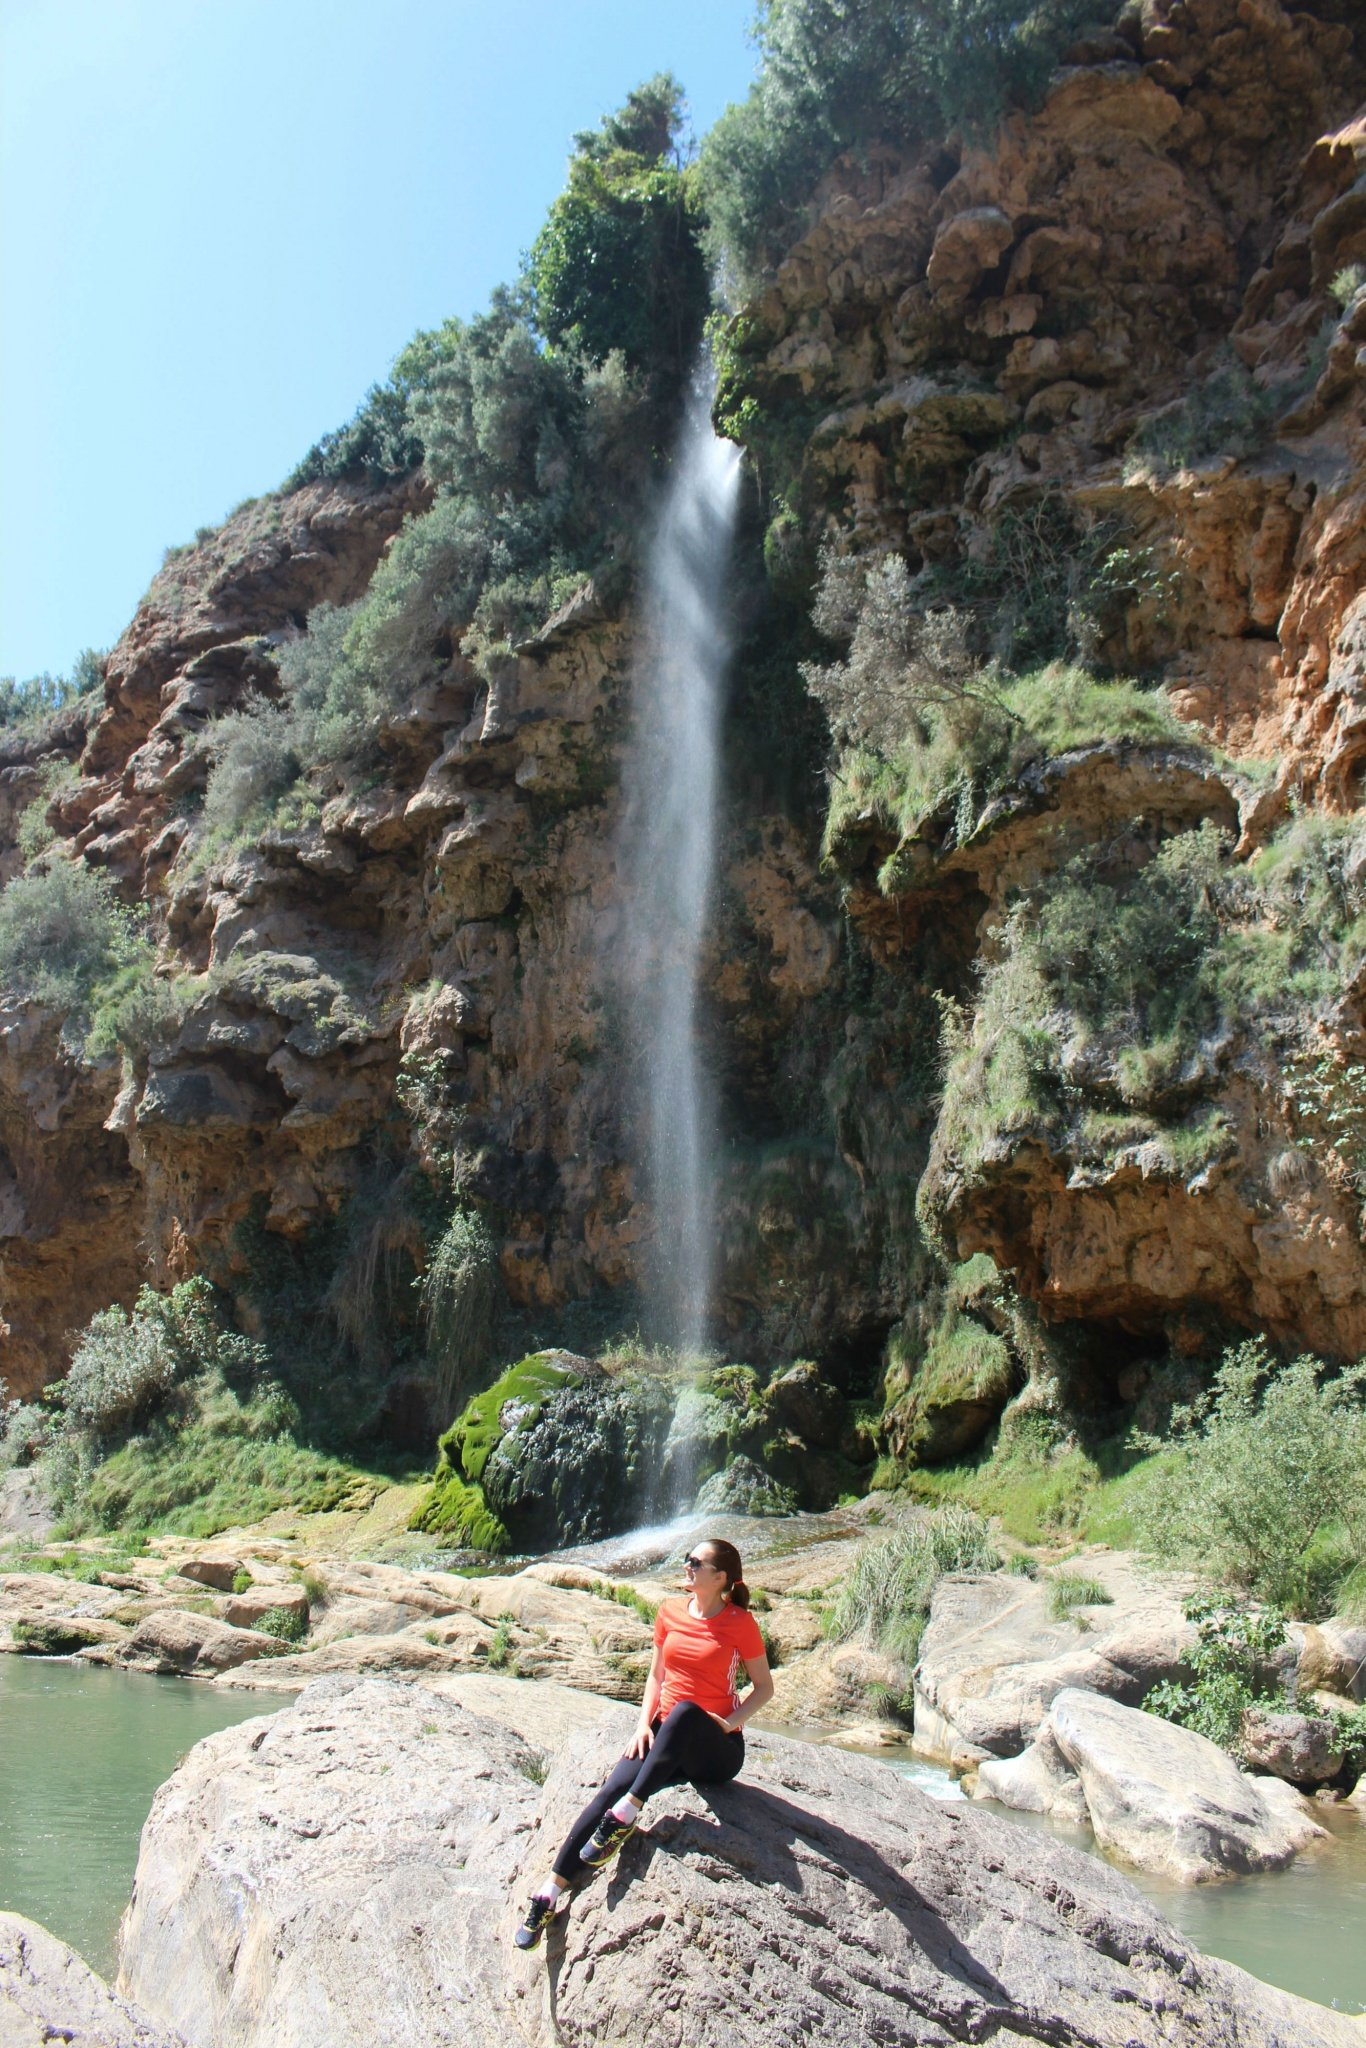 A waterfall in Navajas, near Valencia, Spain